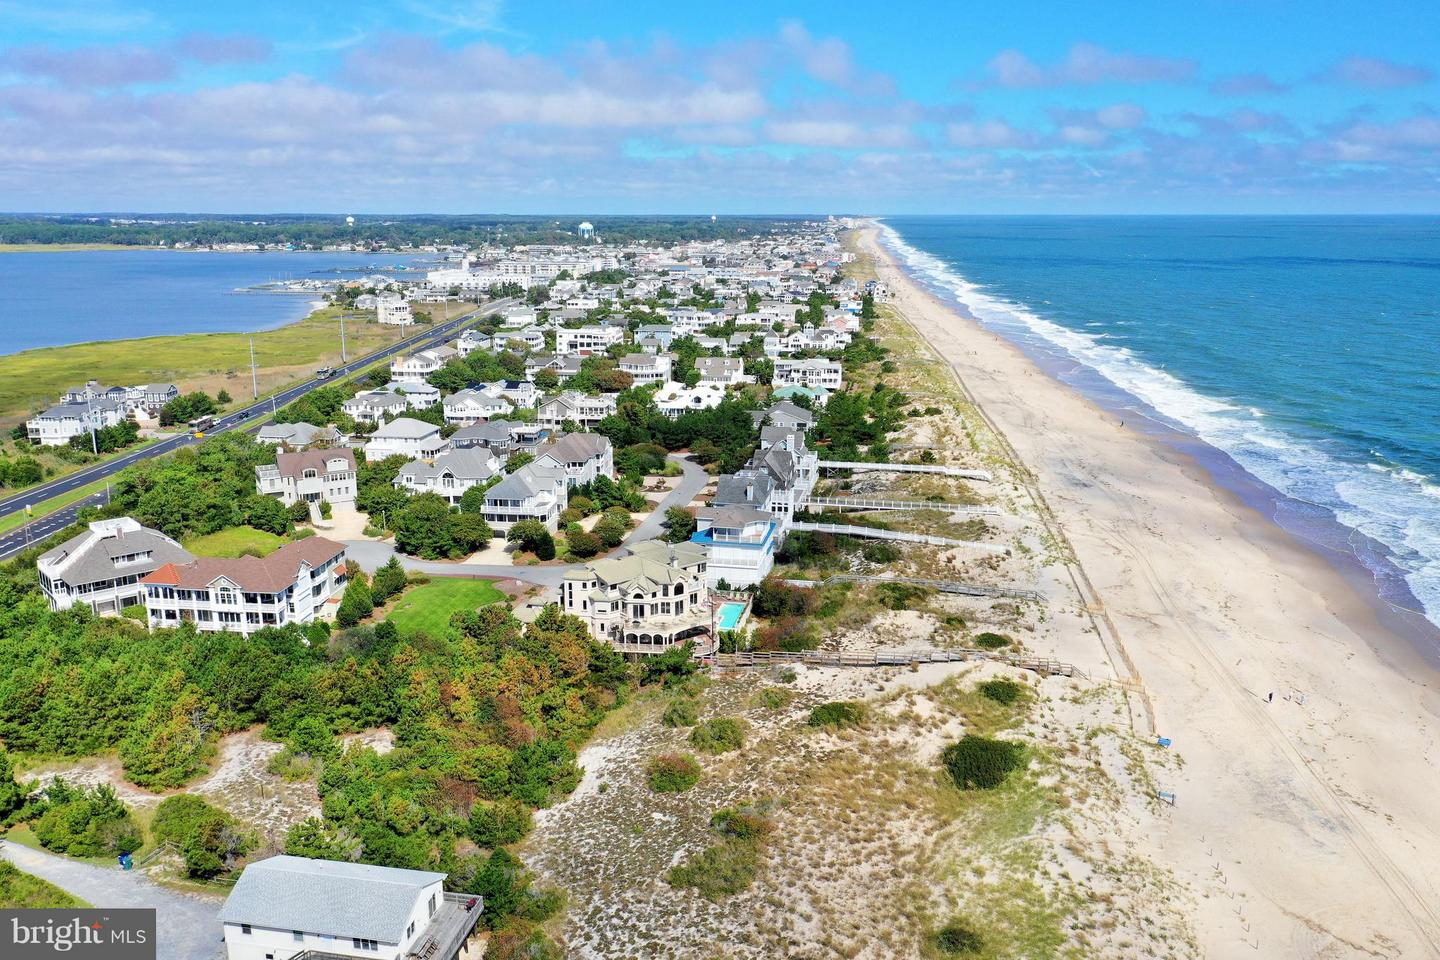 1002293530-300720130617-2018-09-25-15-08-25 31 Hall Ave | Rehoboth Beach, DE Real Estate For Sale | MLS# 1002293530  - Jack Lingo REALTOR